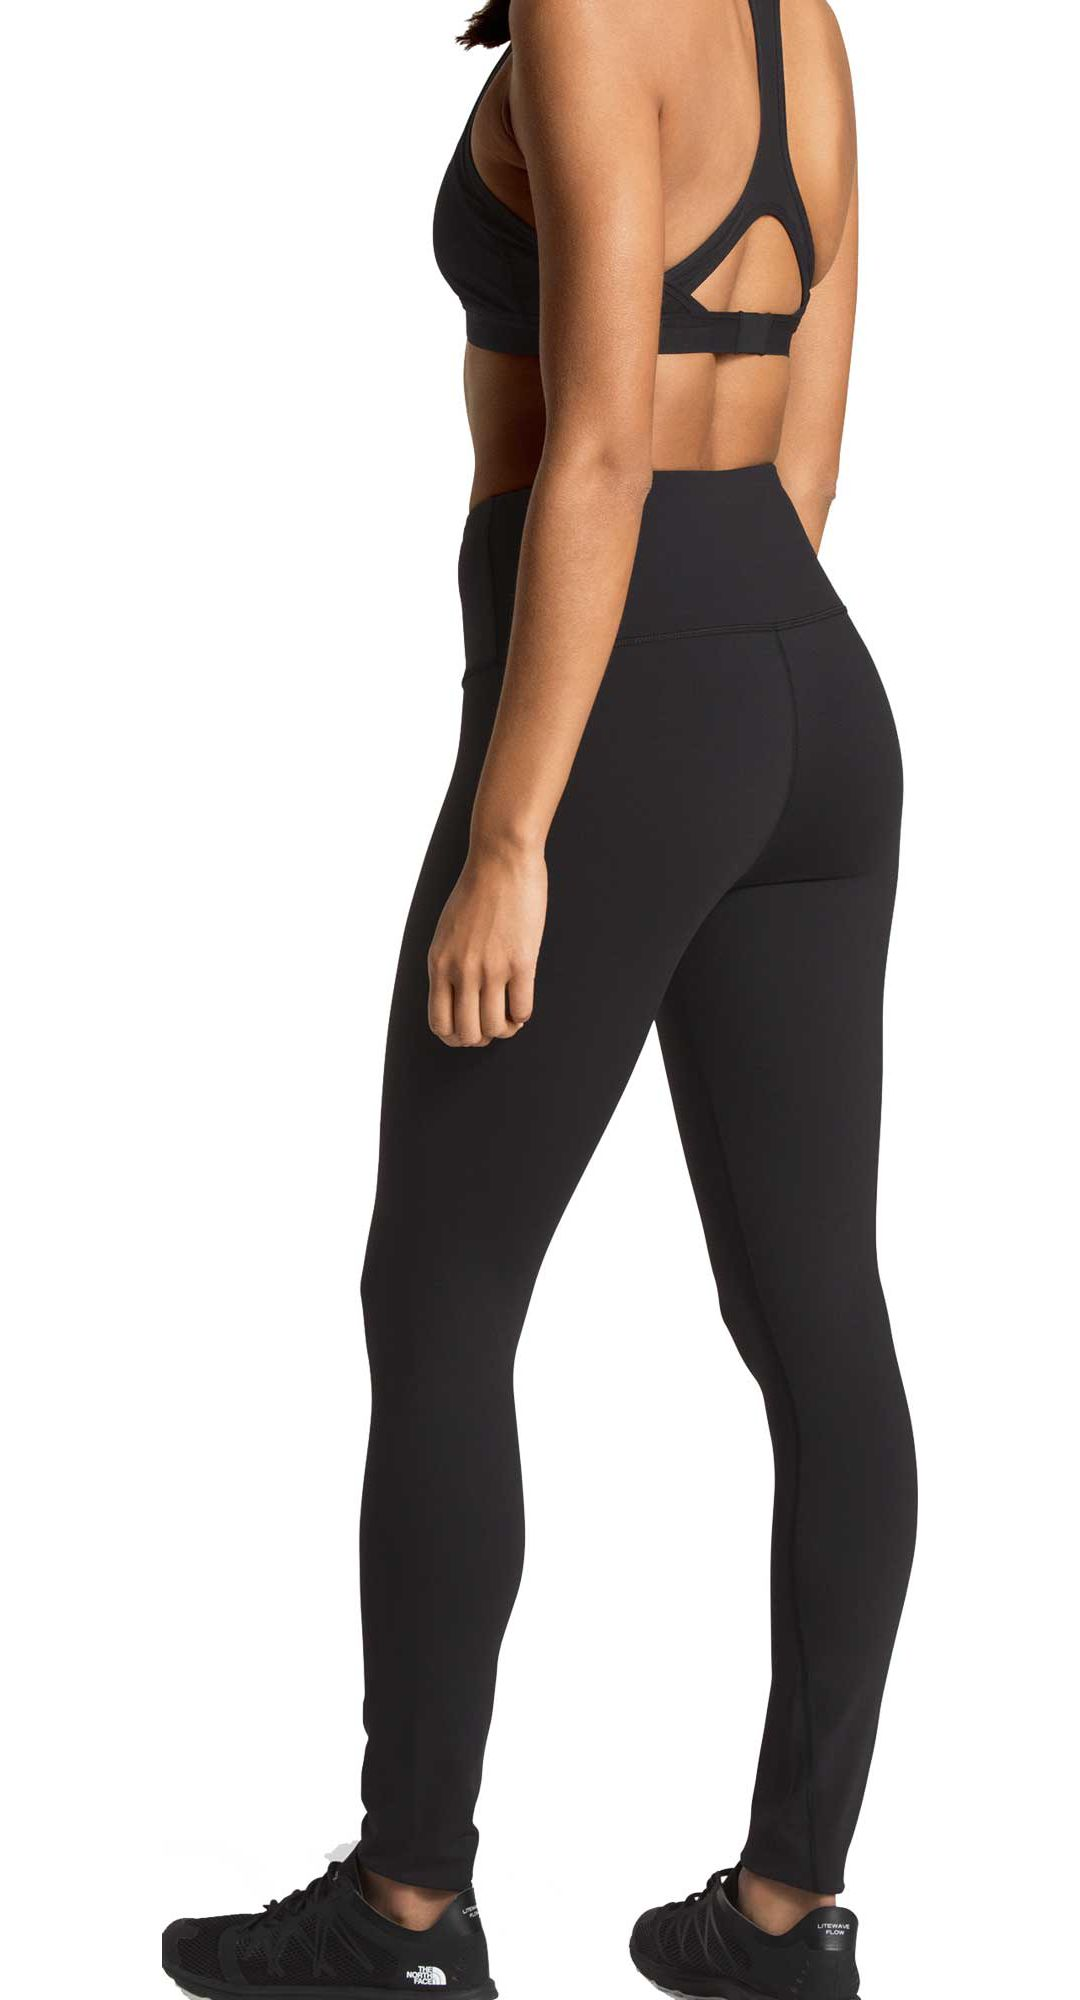 f732b9e212 The North Face Women's Motivation High-Rise Tights | DICK'S Sporting ...